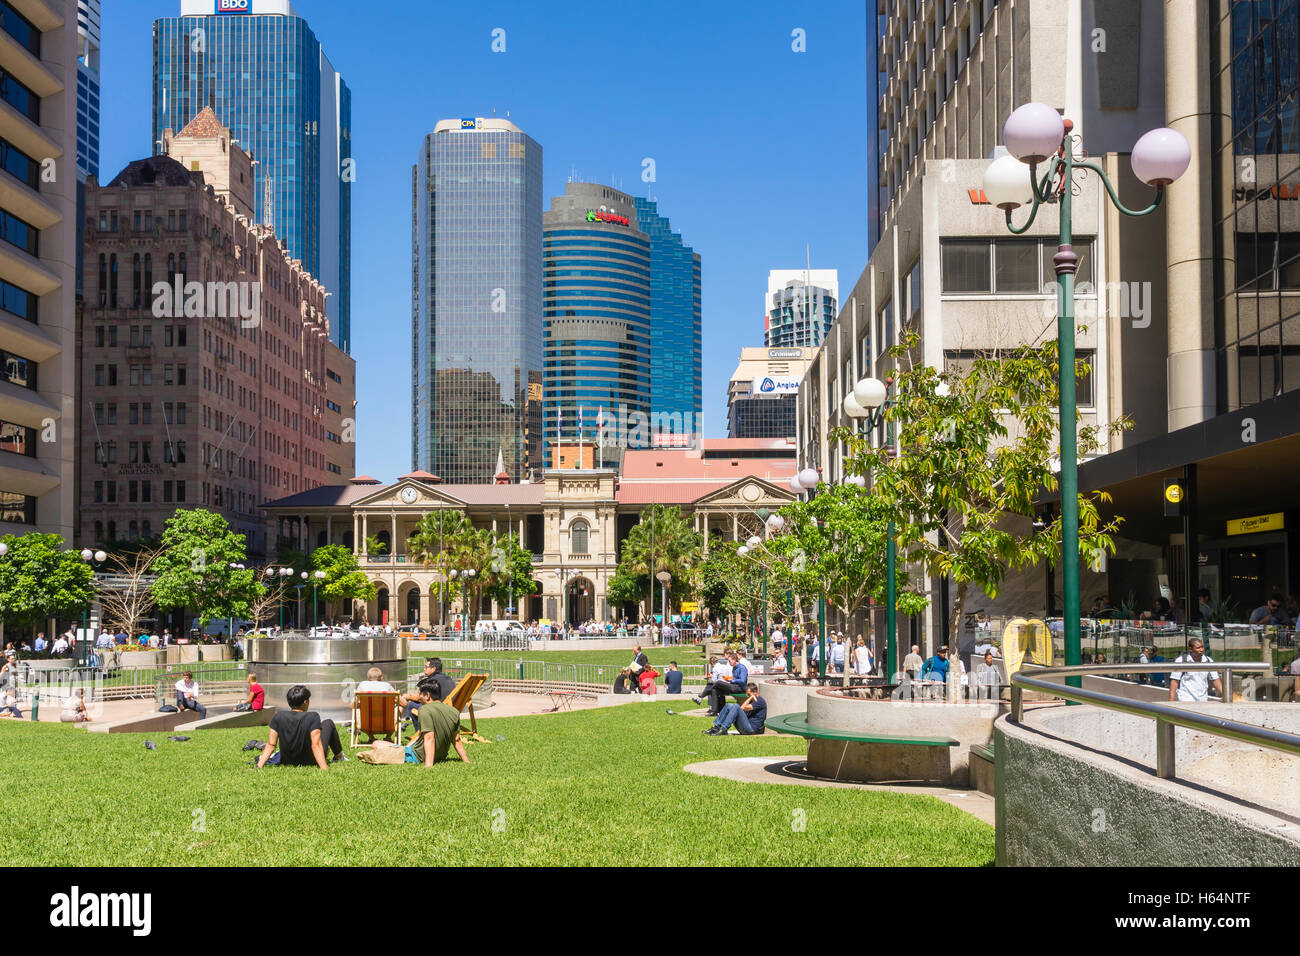 People sitting in the lawn and Brisbane skyline - Stock Image